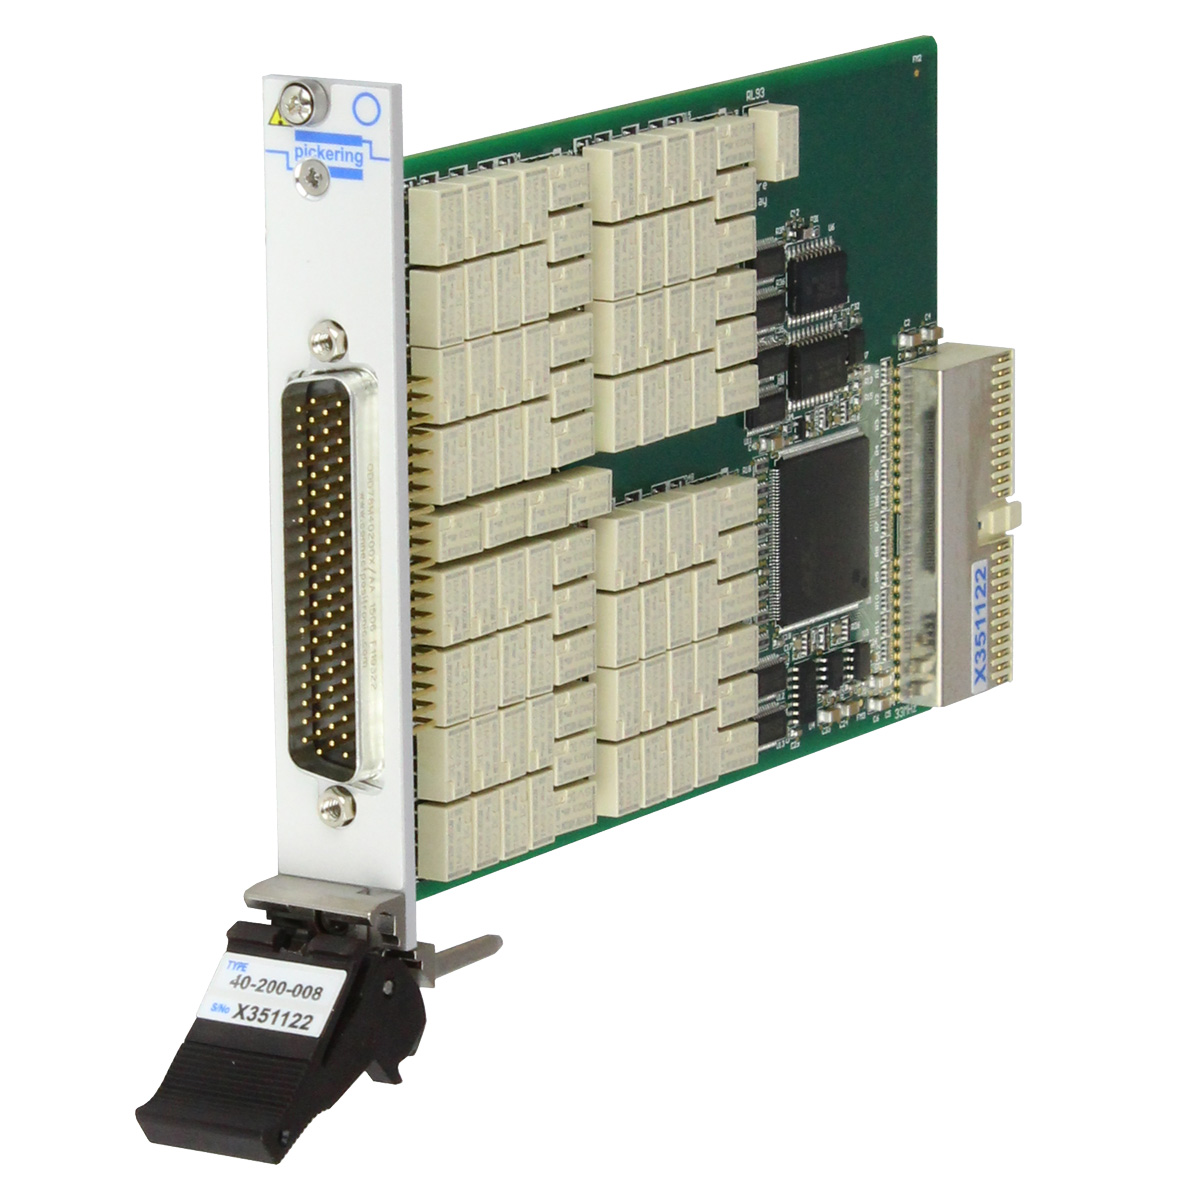 40-552 PXI 16A Power Matrix